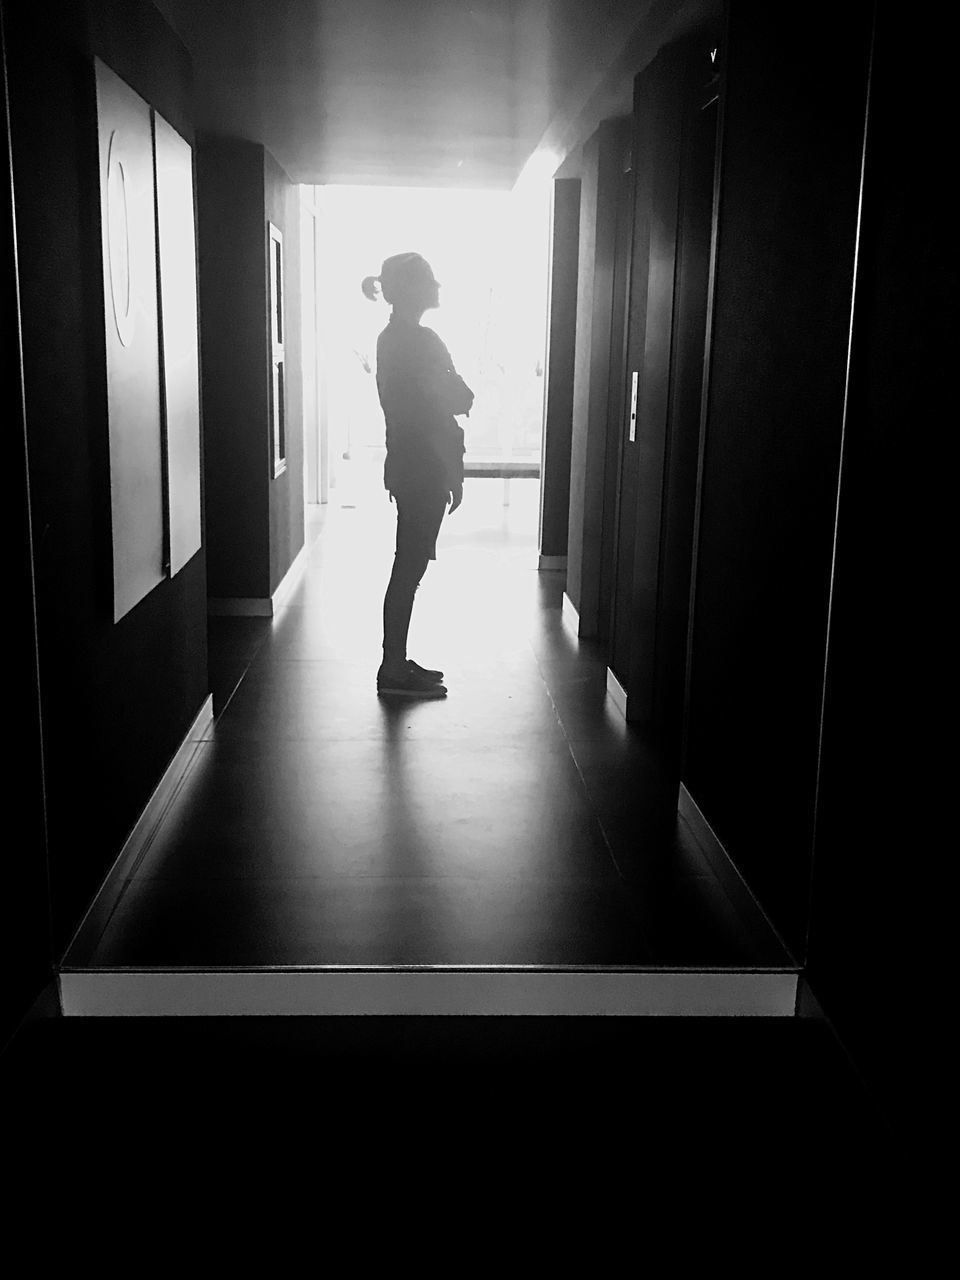 full length, one person, real people, indoors, architecture, lifestyles, standing, men, building, built structure, silhouette, arcade, day, corridor, leisure activity, entrance, sunlight, door, rear view